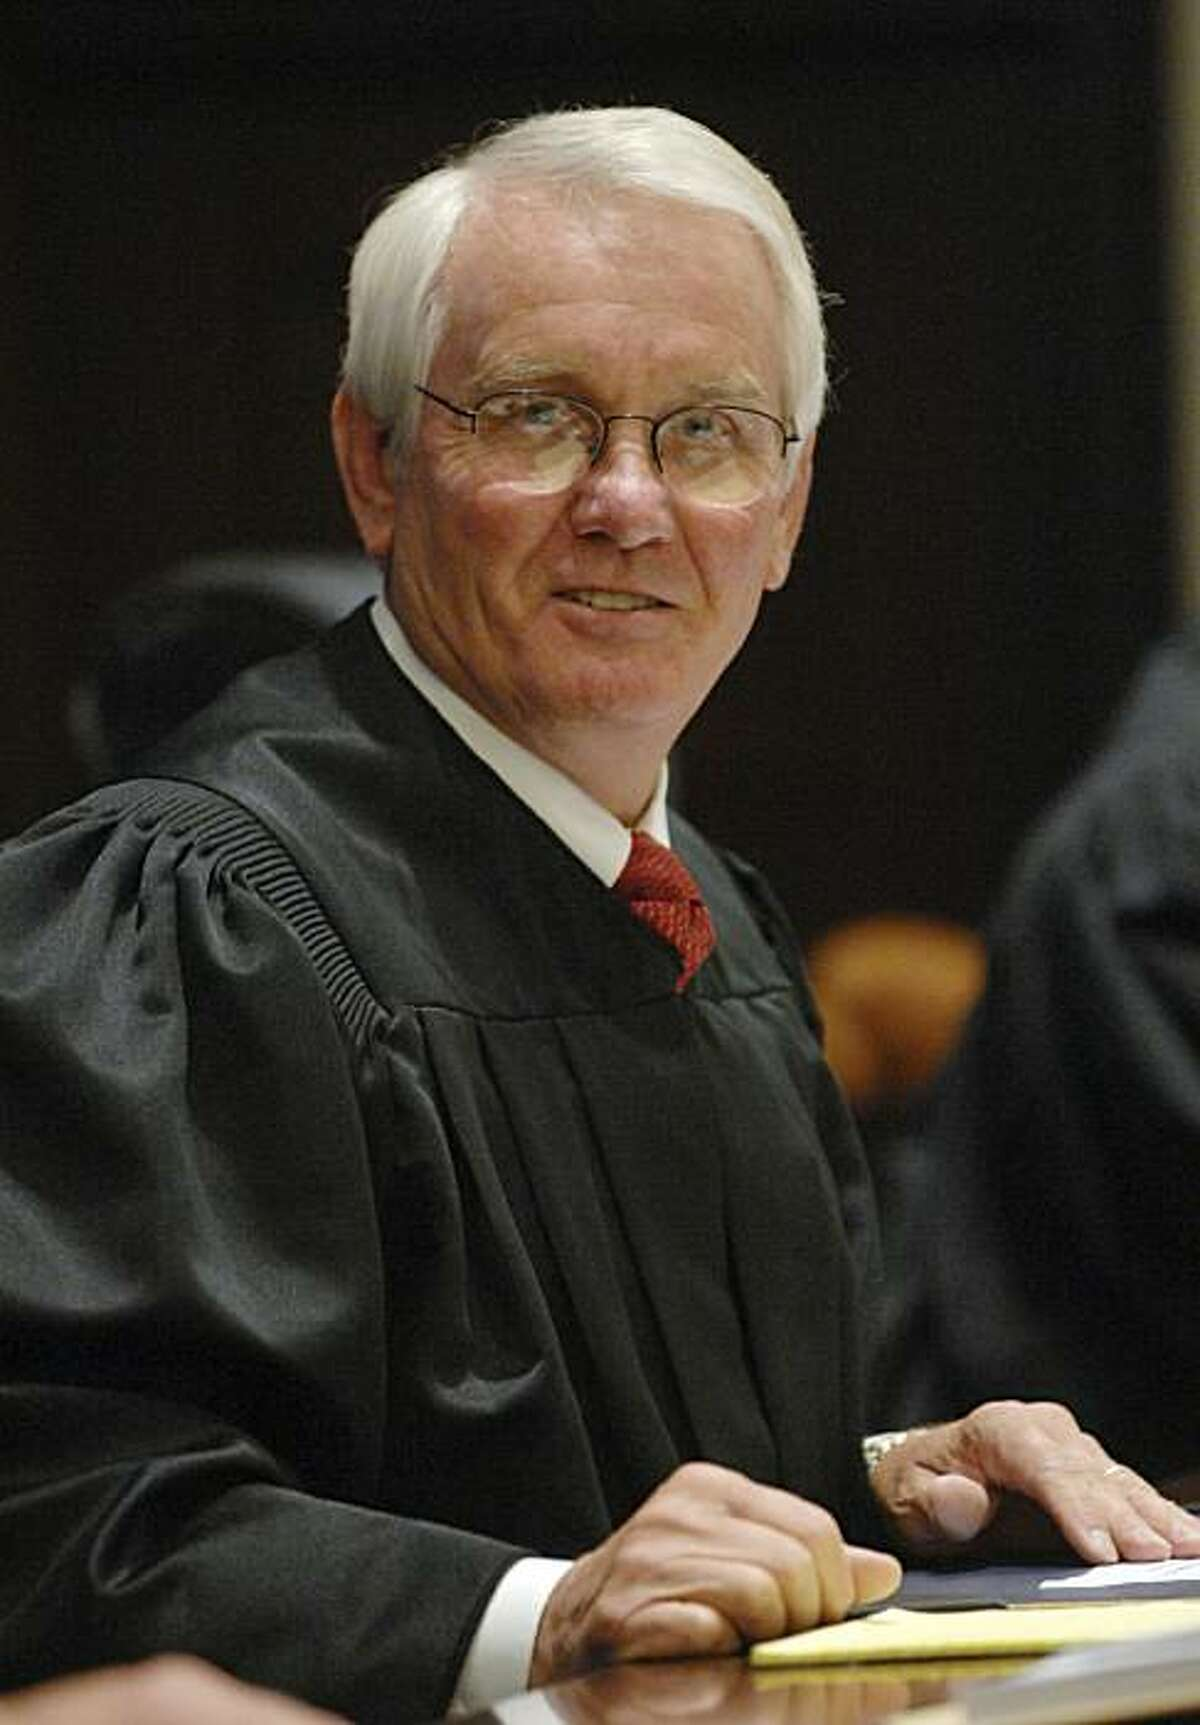 In a July 27, 2007 photo, Senior U.S. District Judge Roger Vinson speaks to candidates for citizenship during a naturalization ceremony at the U.S. District Court in Pensacola, Fla. Vinson declared the Obama administration's health care overhaul unconstitutional Monday, Jan. 31, 2011, siding with 26 states that sued to block it, saying that people can't be required to buy health insurance.